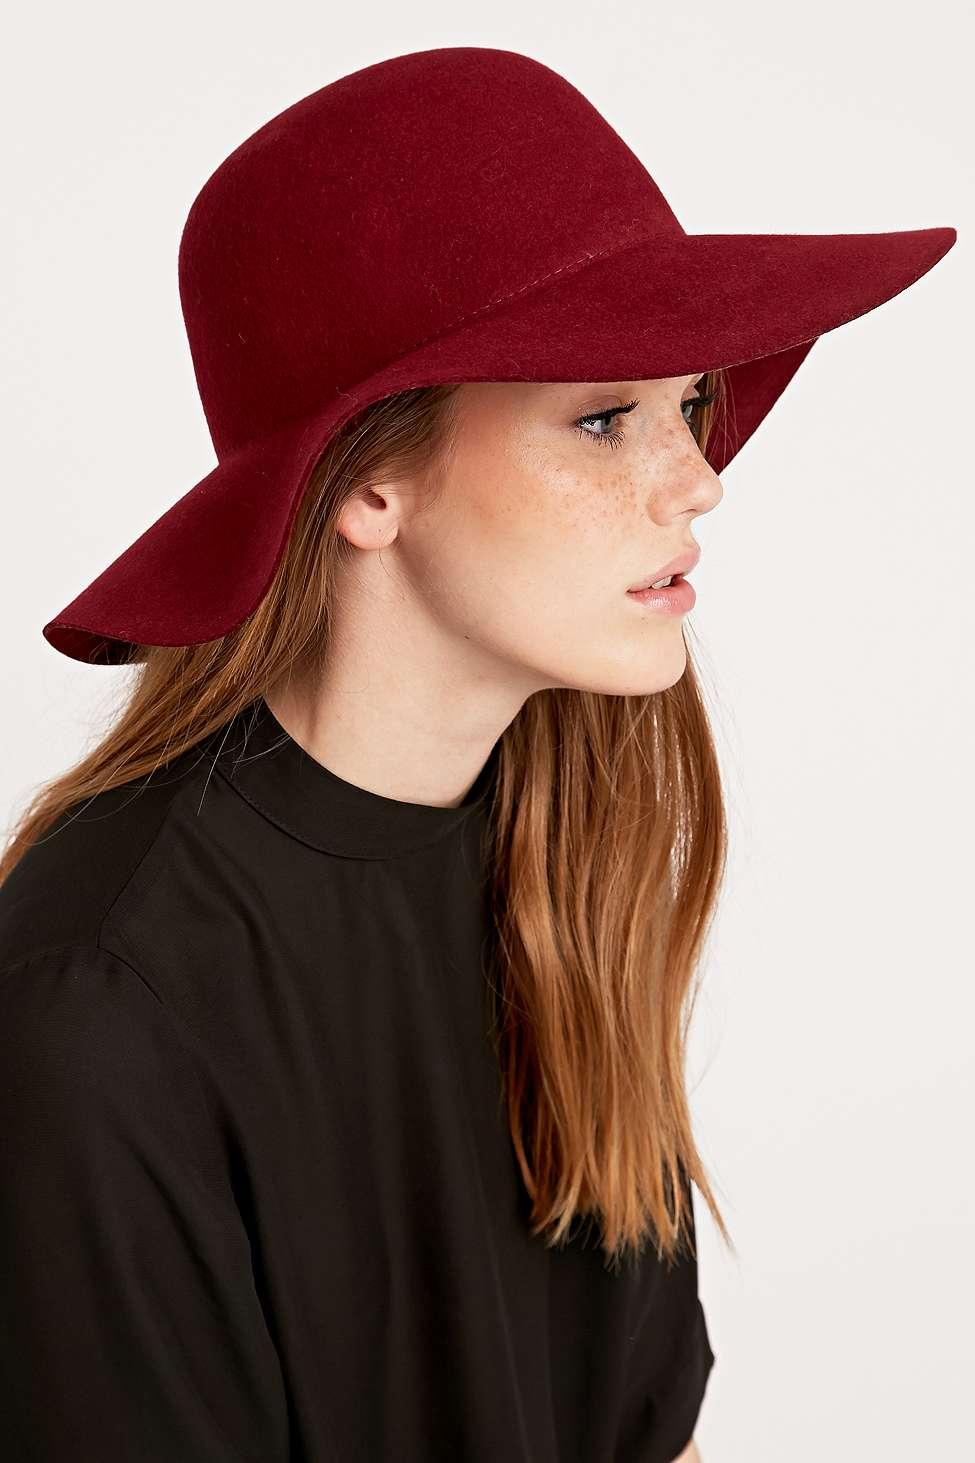 Urban Outfitters Mia Felt Floppy Hat In Burgundy in Red - Lyst ccc34c76fa0f